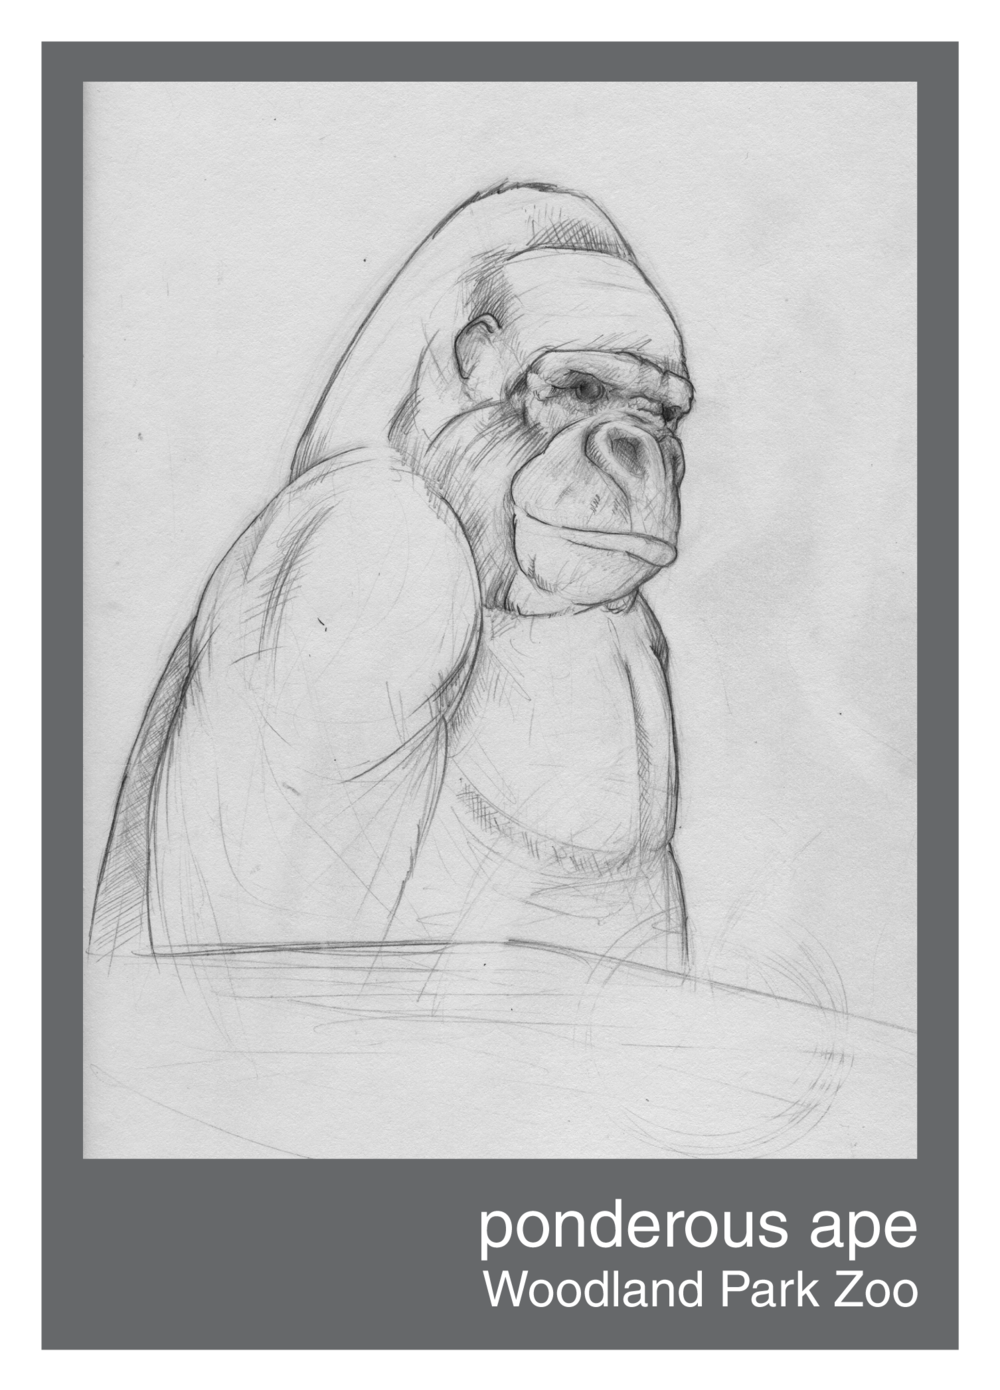 ponderous_ape--150ppi.png